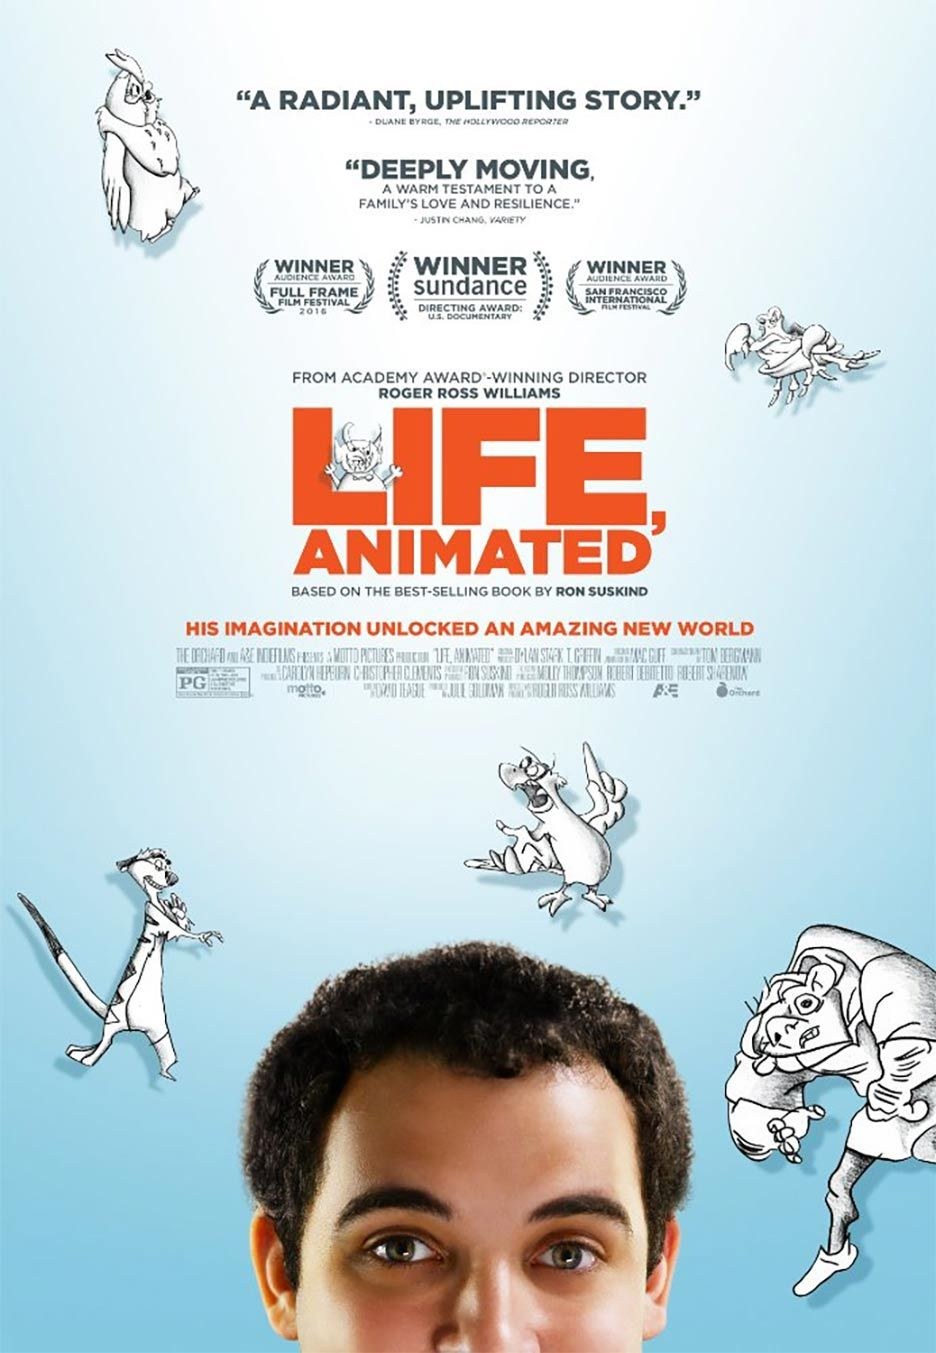 動畫醫神 | Life, Animated   (90min / 2016)     #MelanieLynskey    #JasonRitter    #SkylarBernon     #France    #USA    #Movie    #Poster  #Documentary